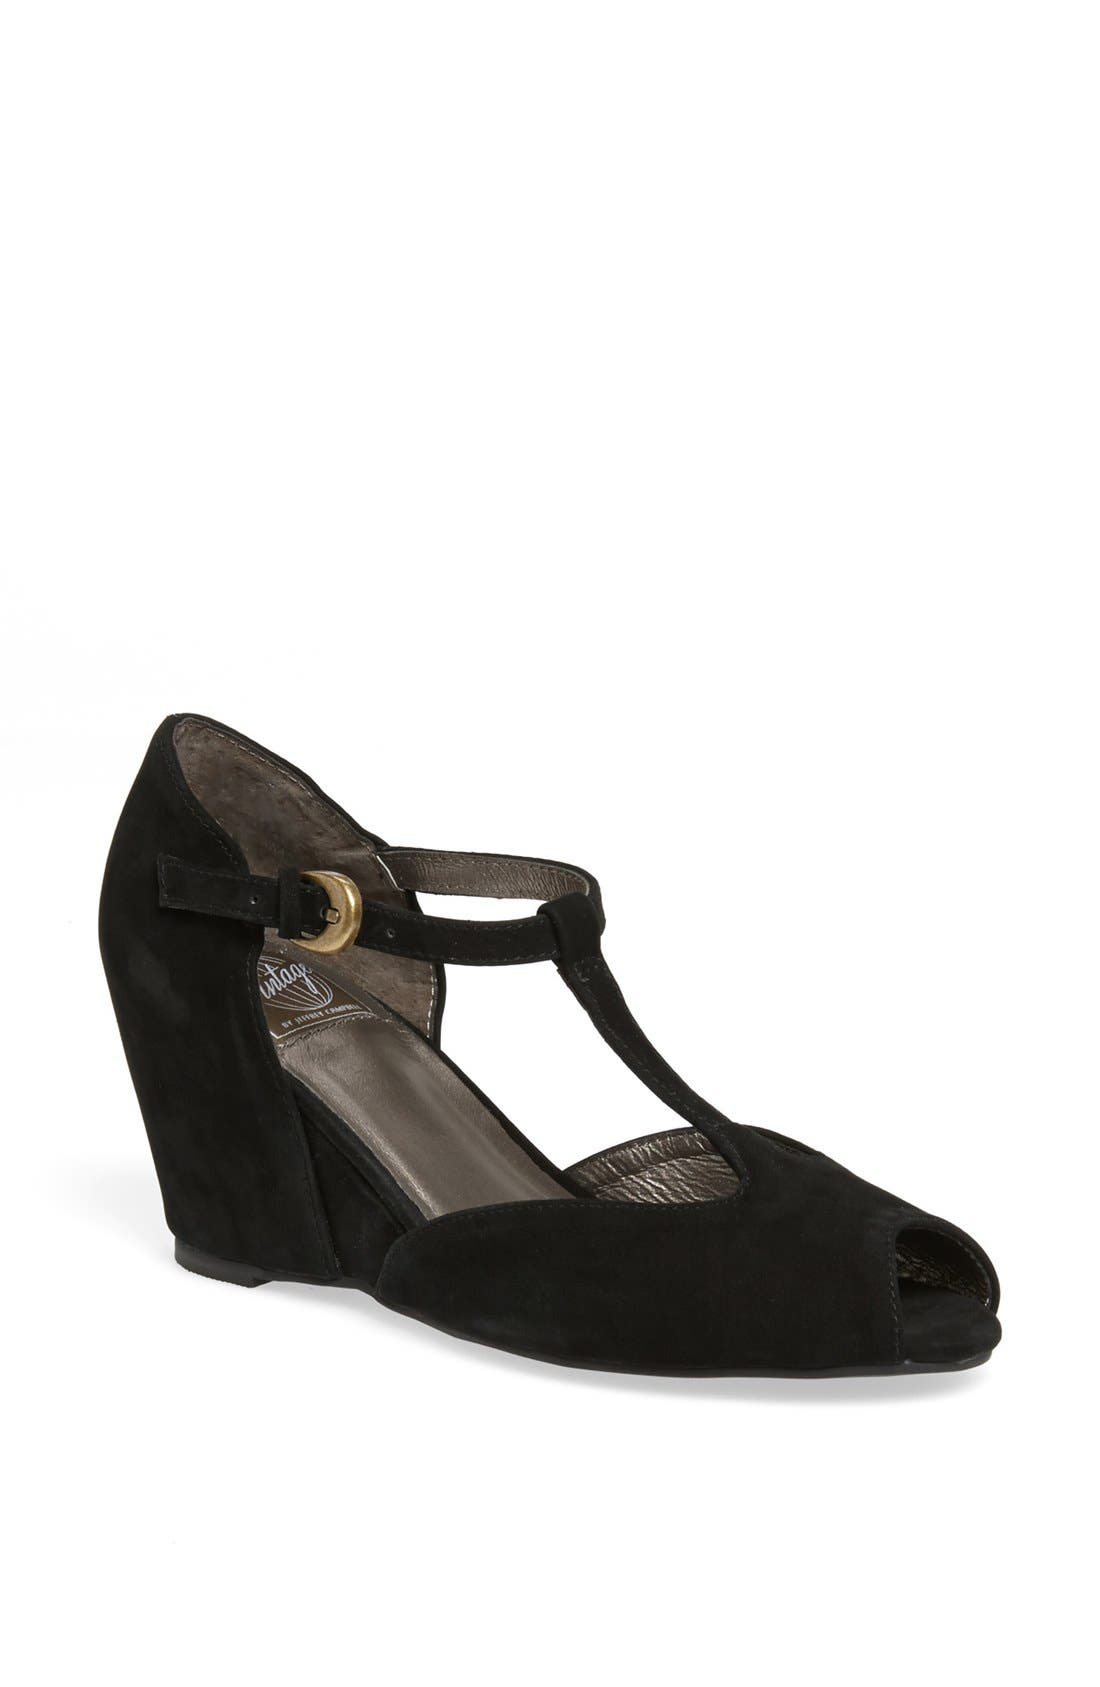 Main Image - Jeffrey Campbell 'Irene' Wedge Pump